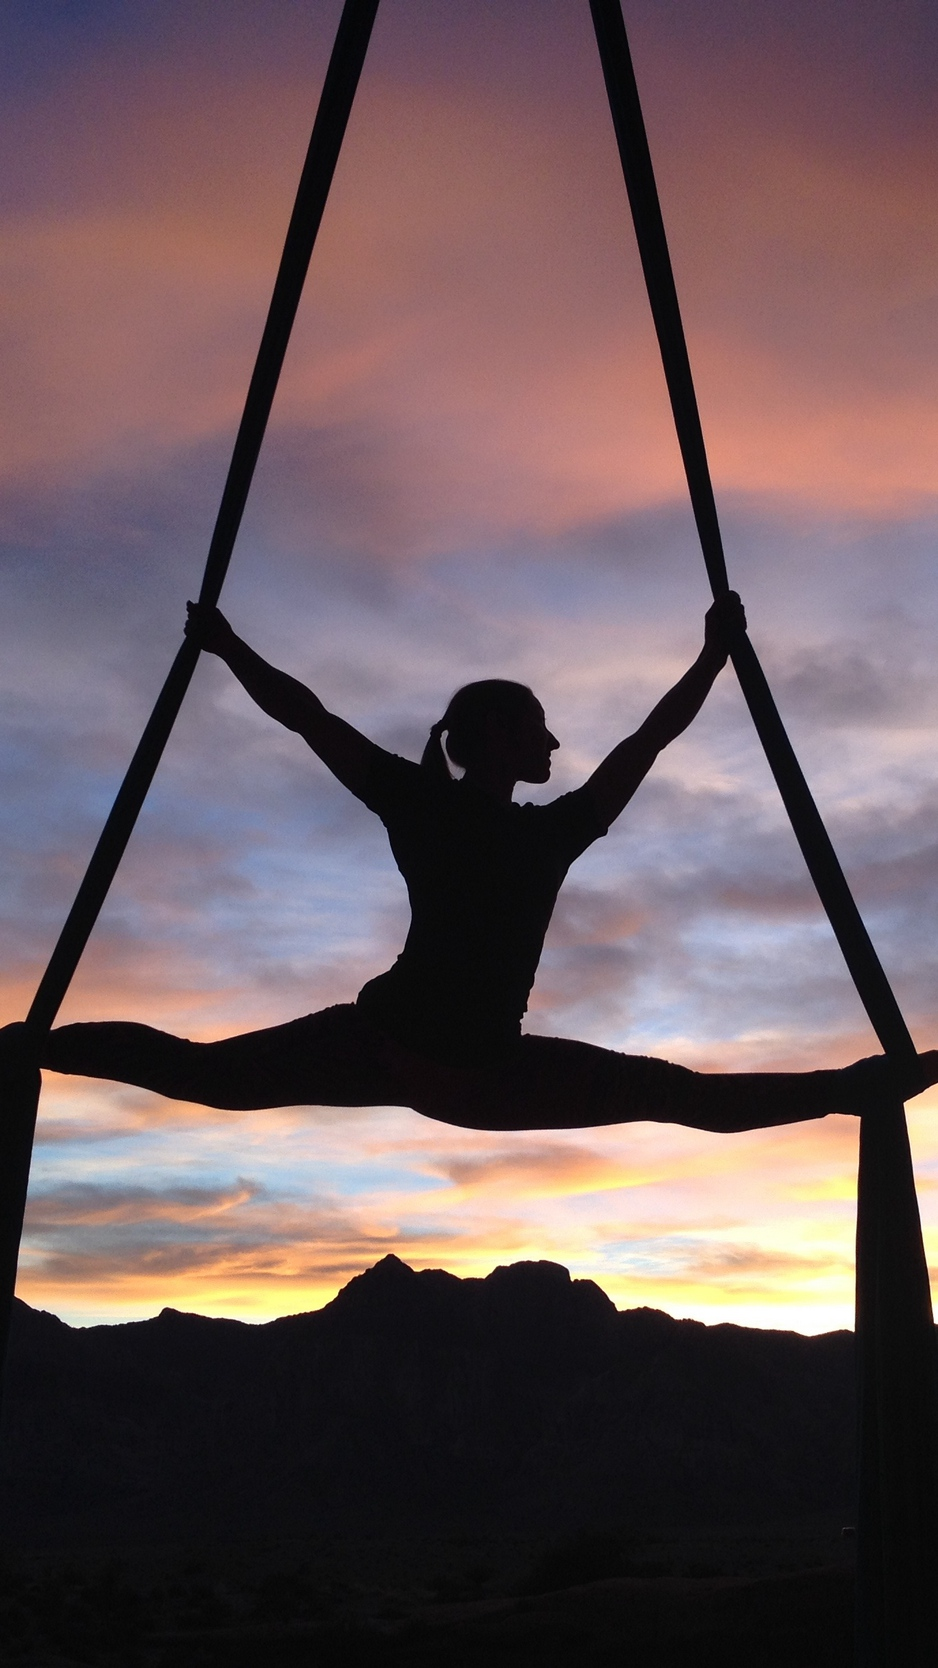 Download wallpaper 938x1668 silhouette air gymnast girl gymnast 938x1668